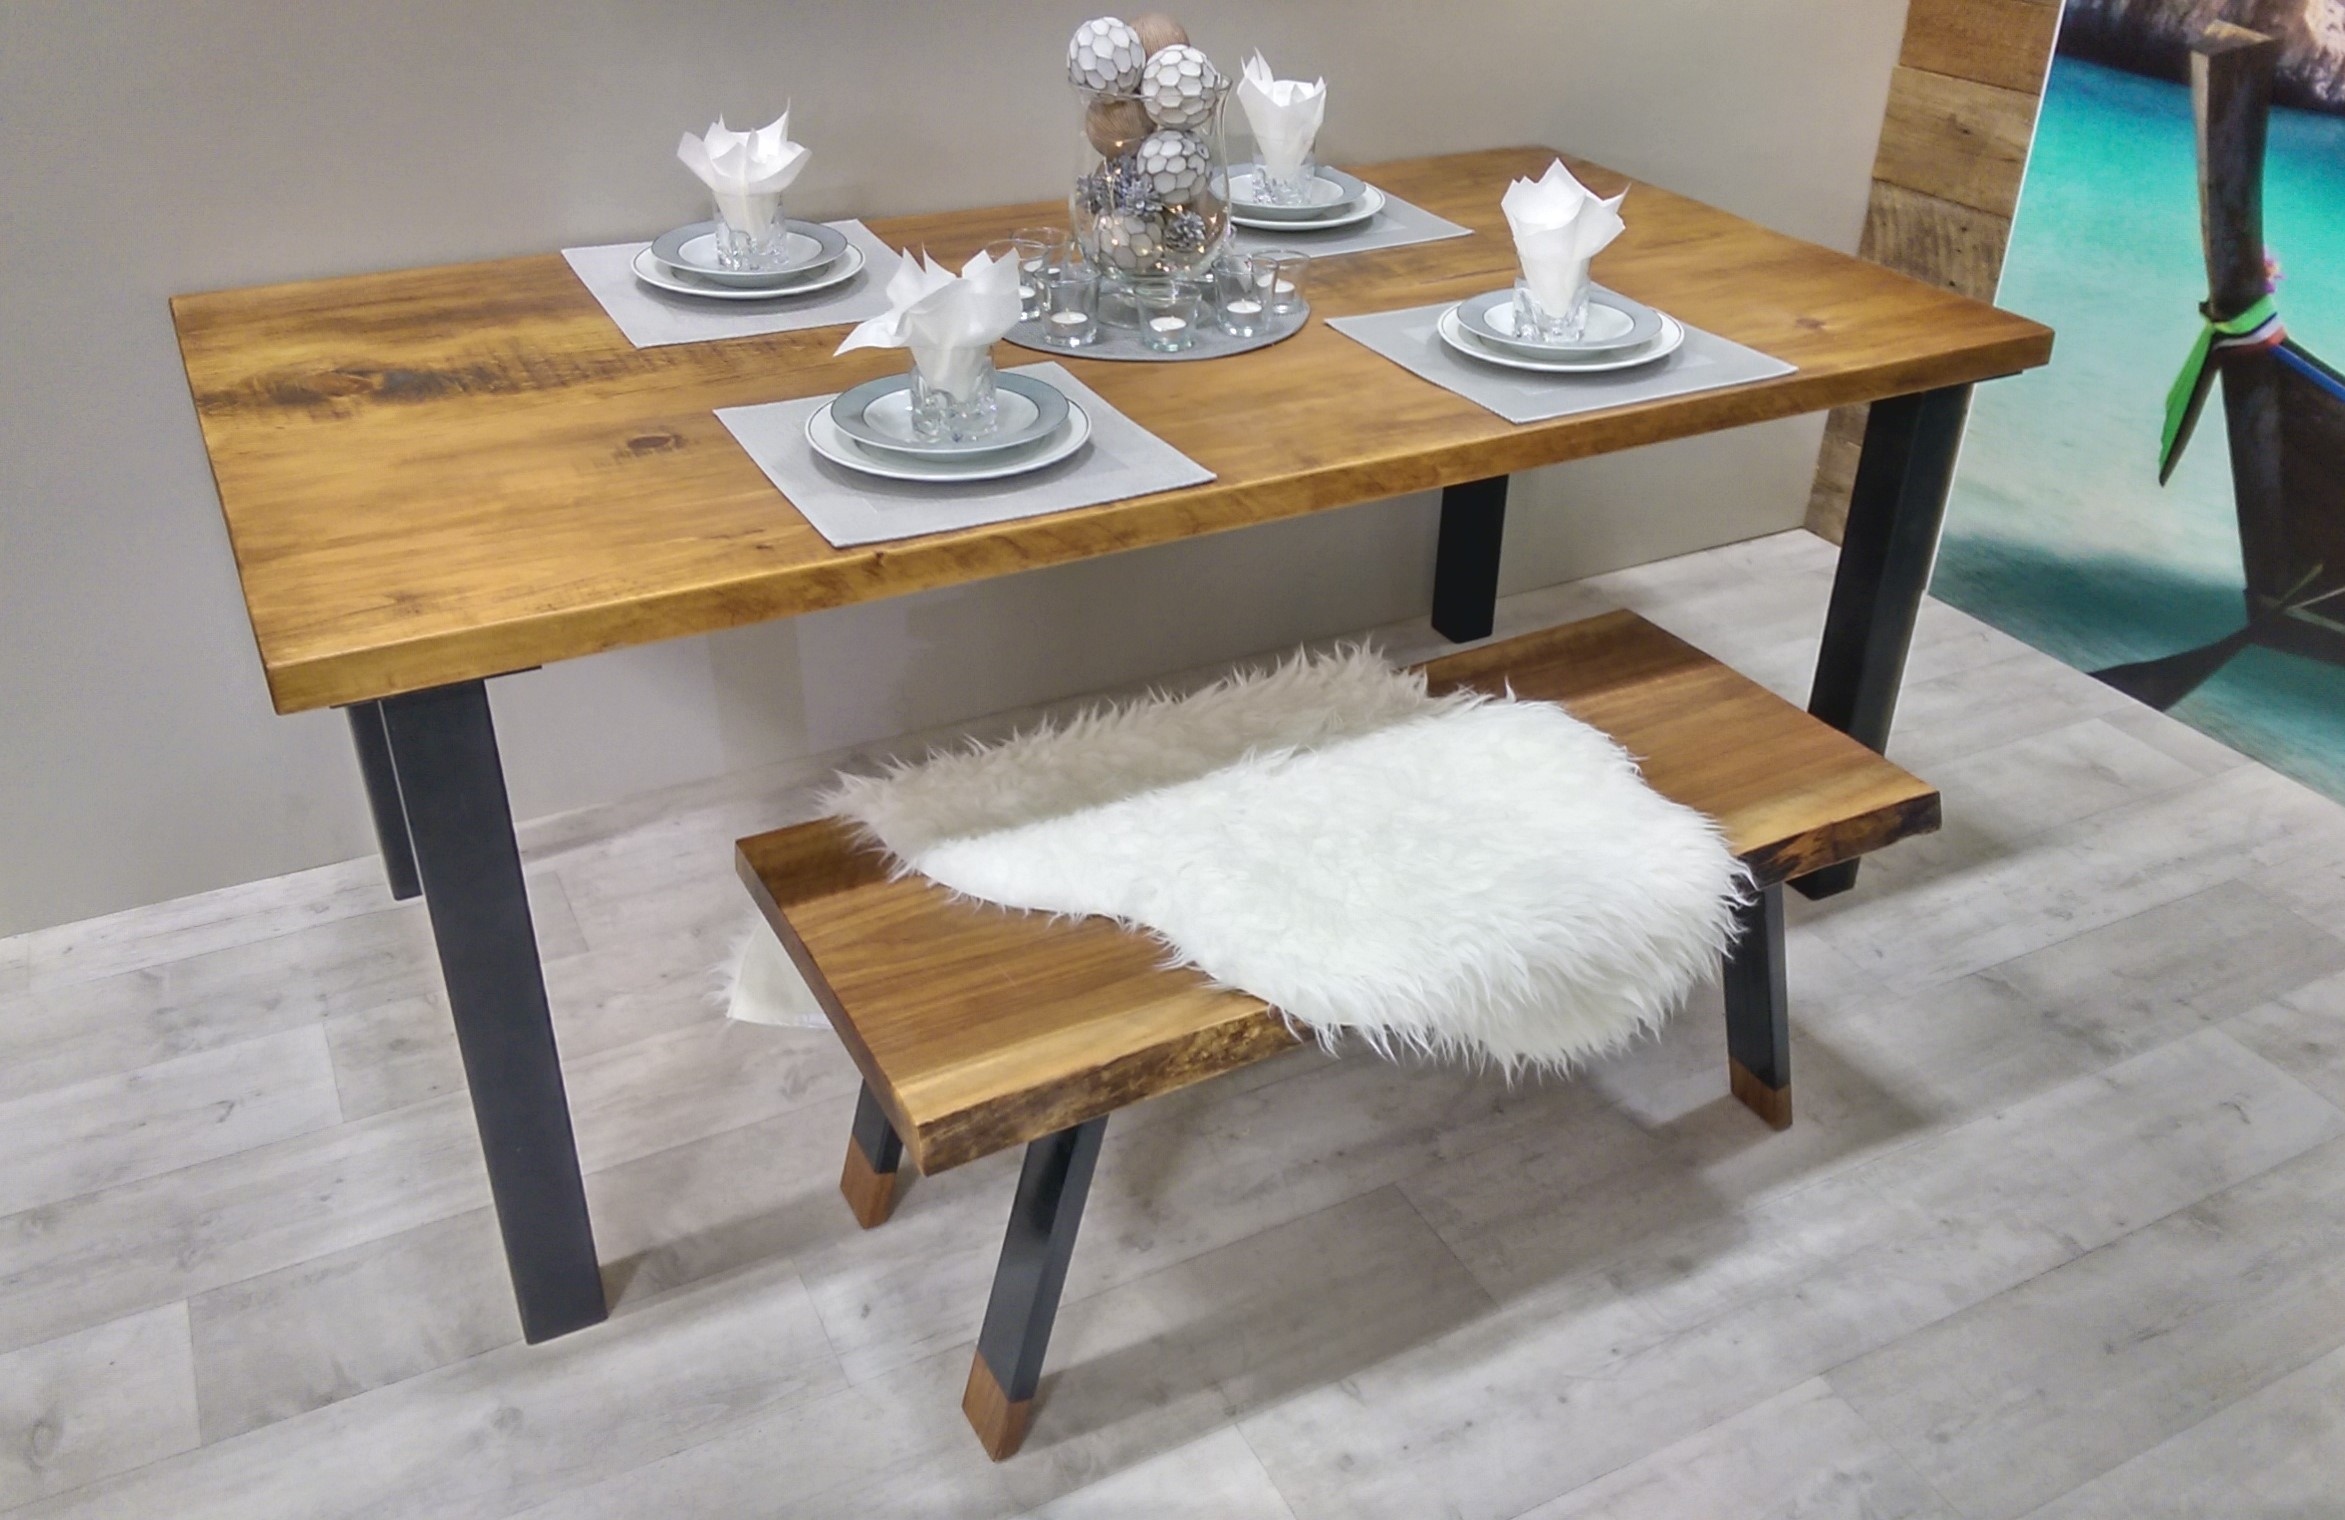 Table de cuisine rustika en bois m tal table d ner for Table de cuisine leroy merlin